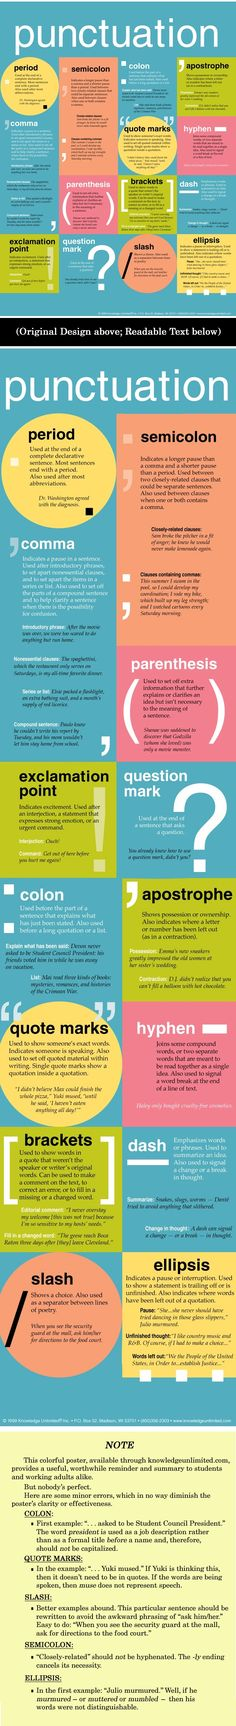 Punctuation in English Teaching Writing, Writing Help, Writing Skills, Writing Tips, Teaching Resources, Essay Writing, Academic Writing, Writing Resources, Writing Services